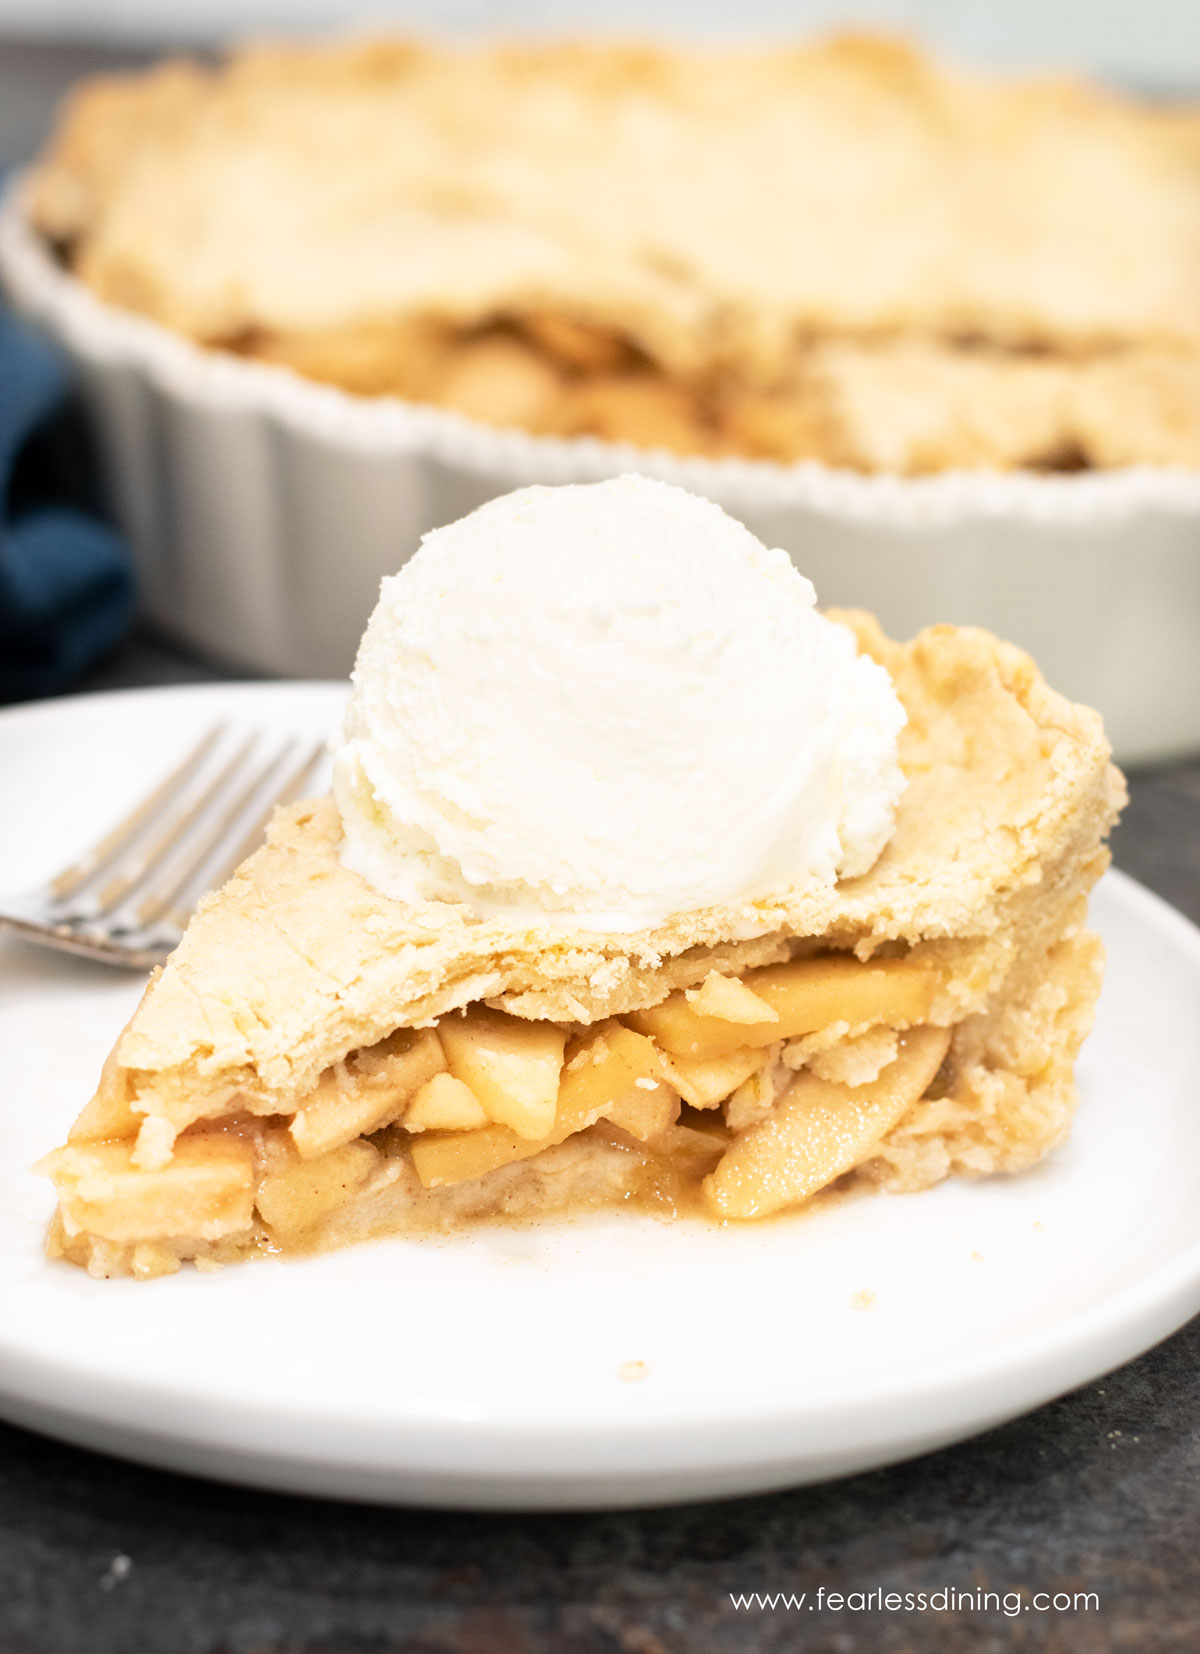 A slice of gluten free hatch chile apple pie on a plate. The slice is topped with a scoop of vanilla ice cream